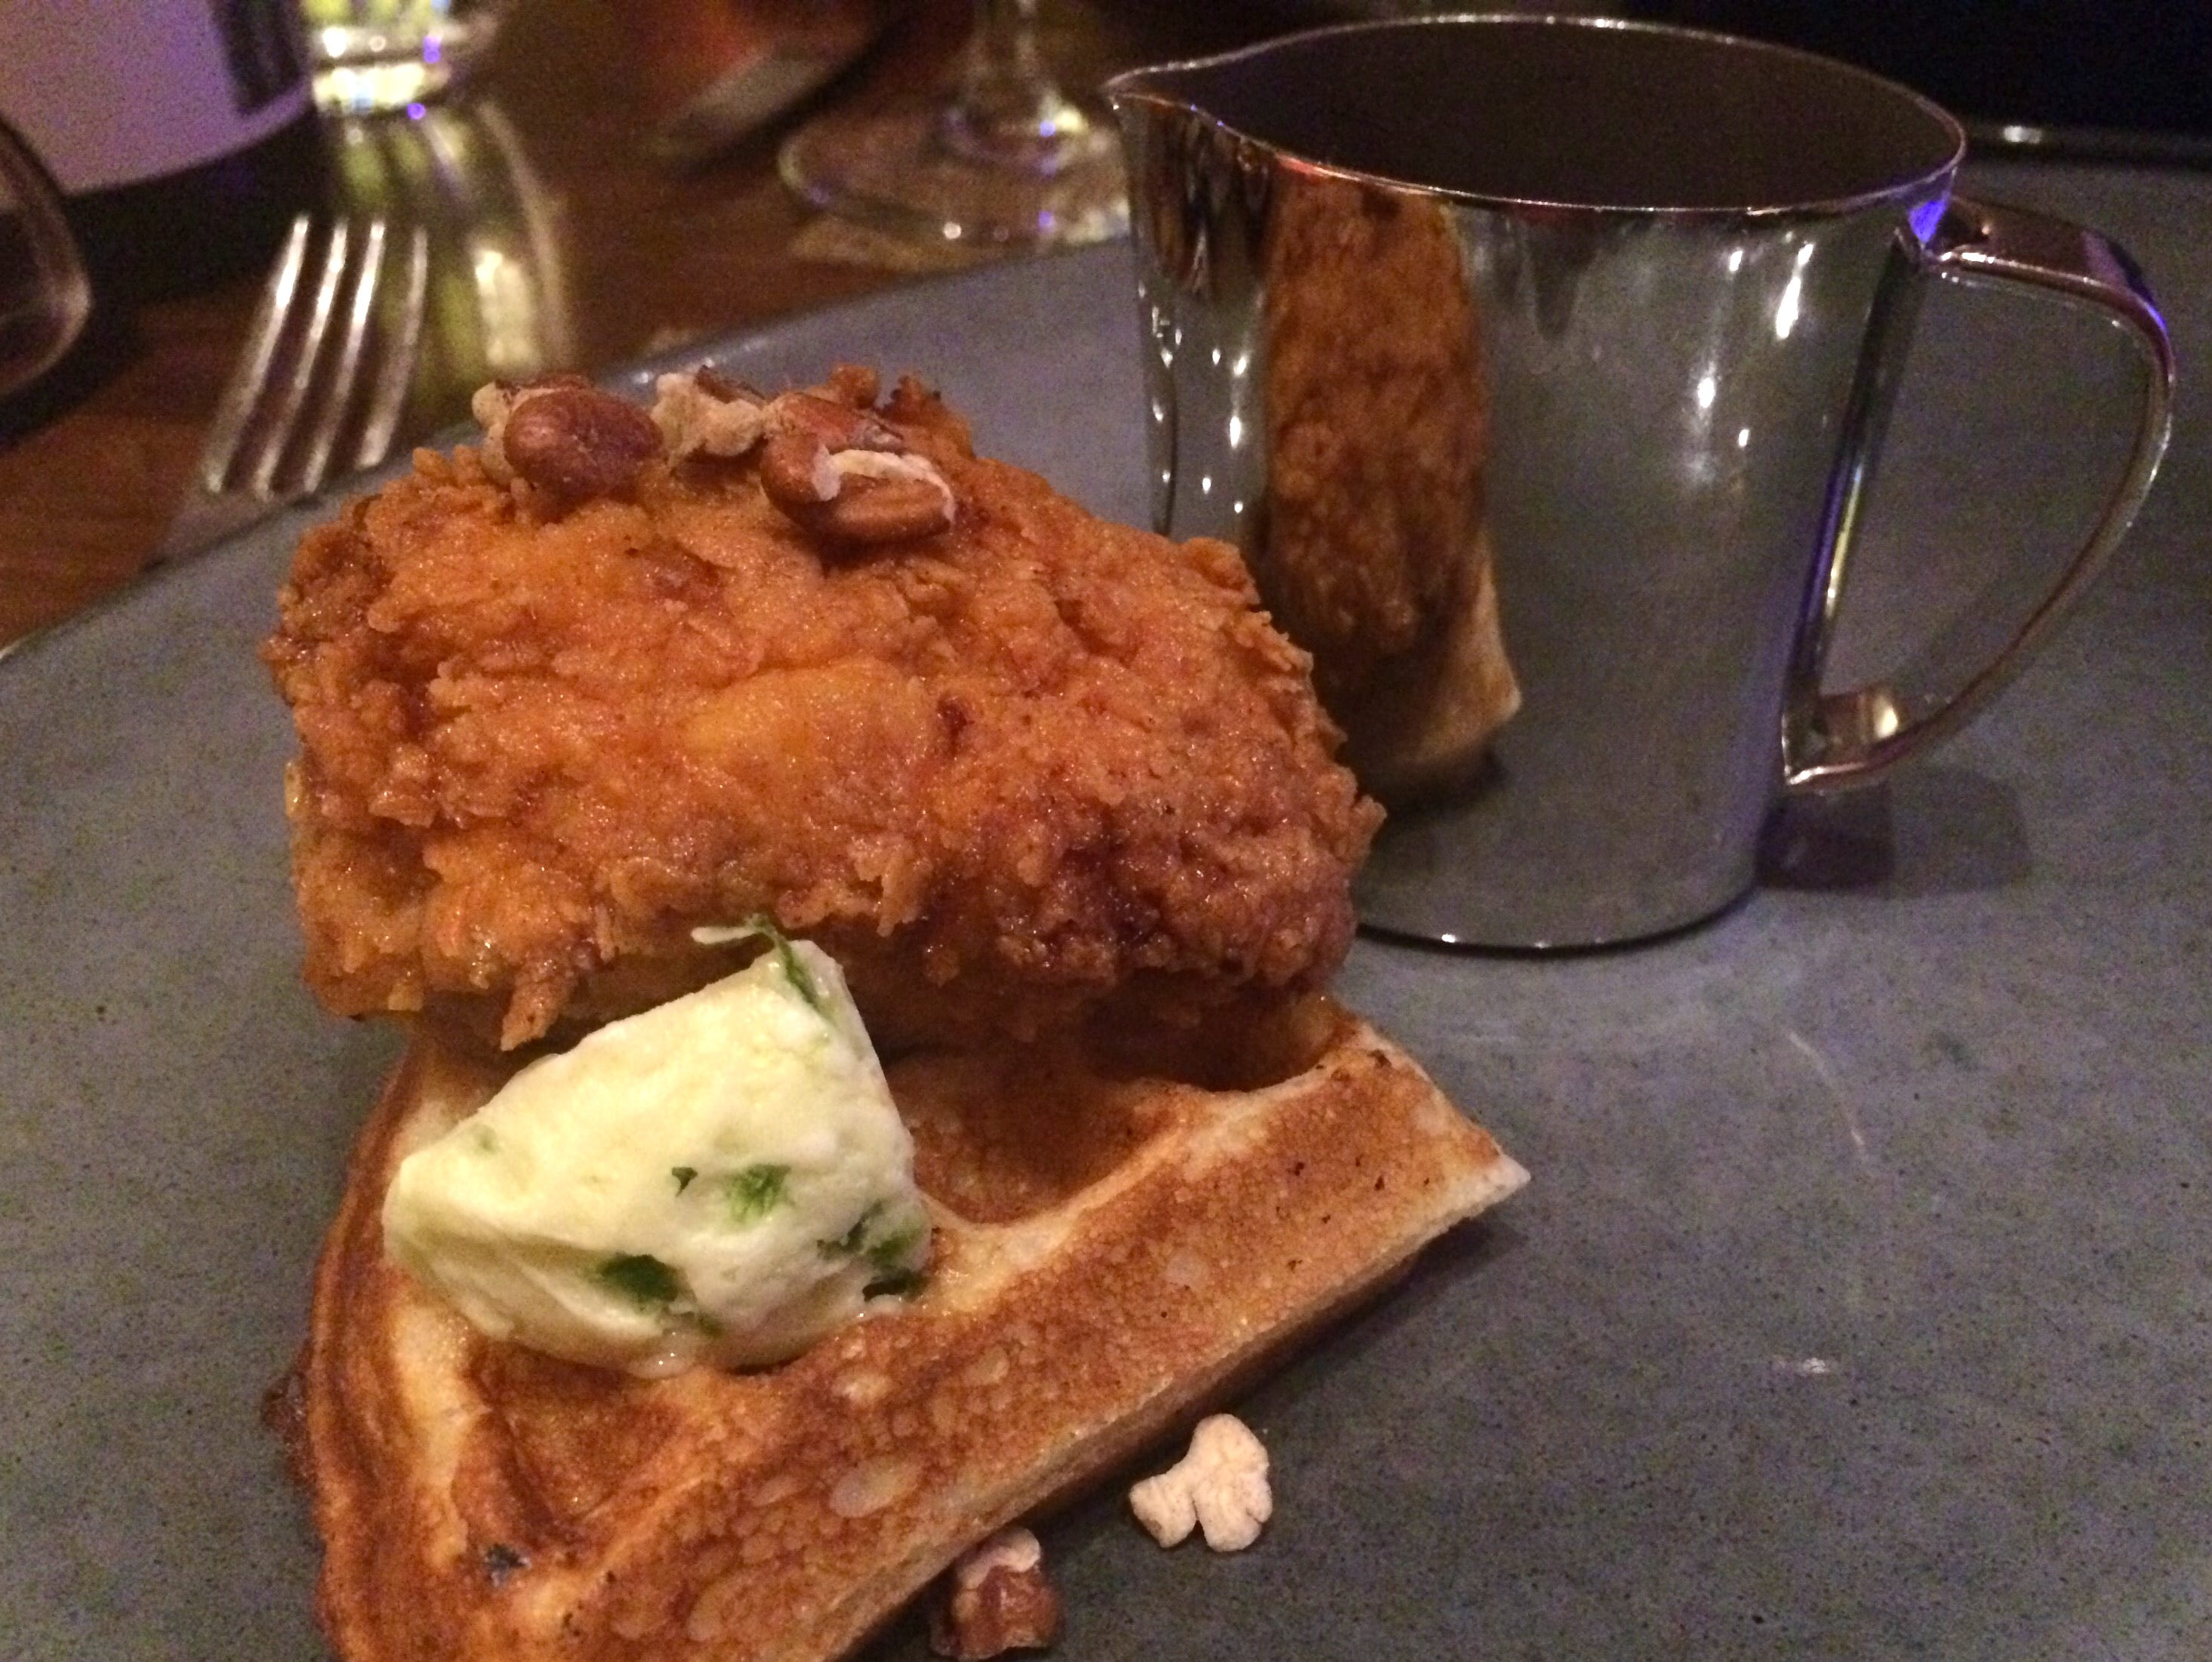 Chicken and waffles with bourbon maple syrup at Decker & Dyer.